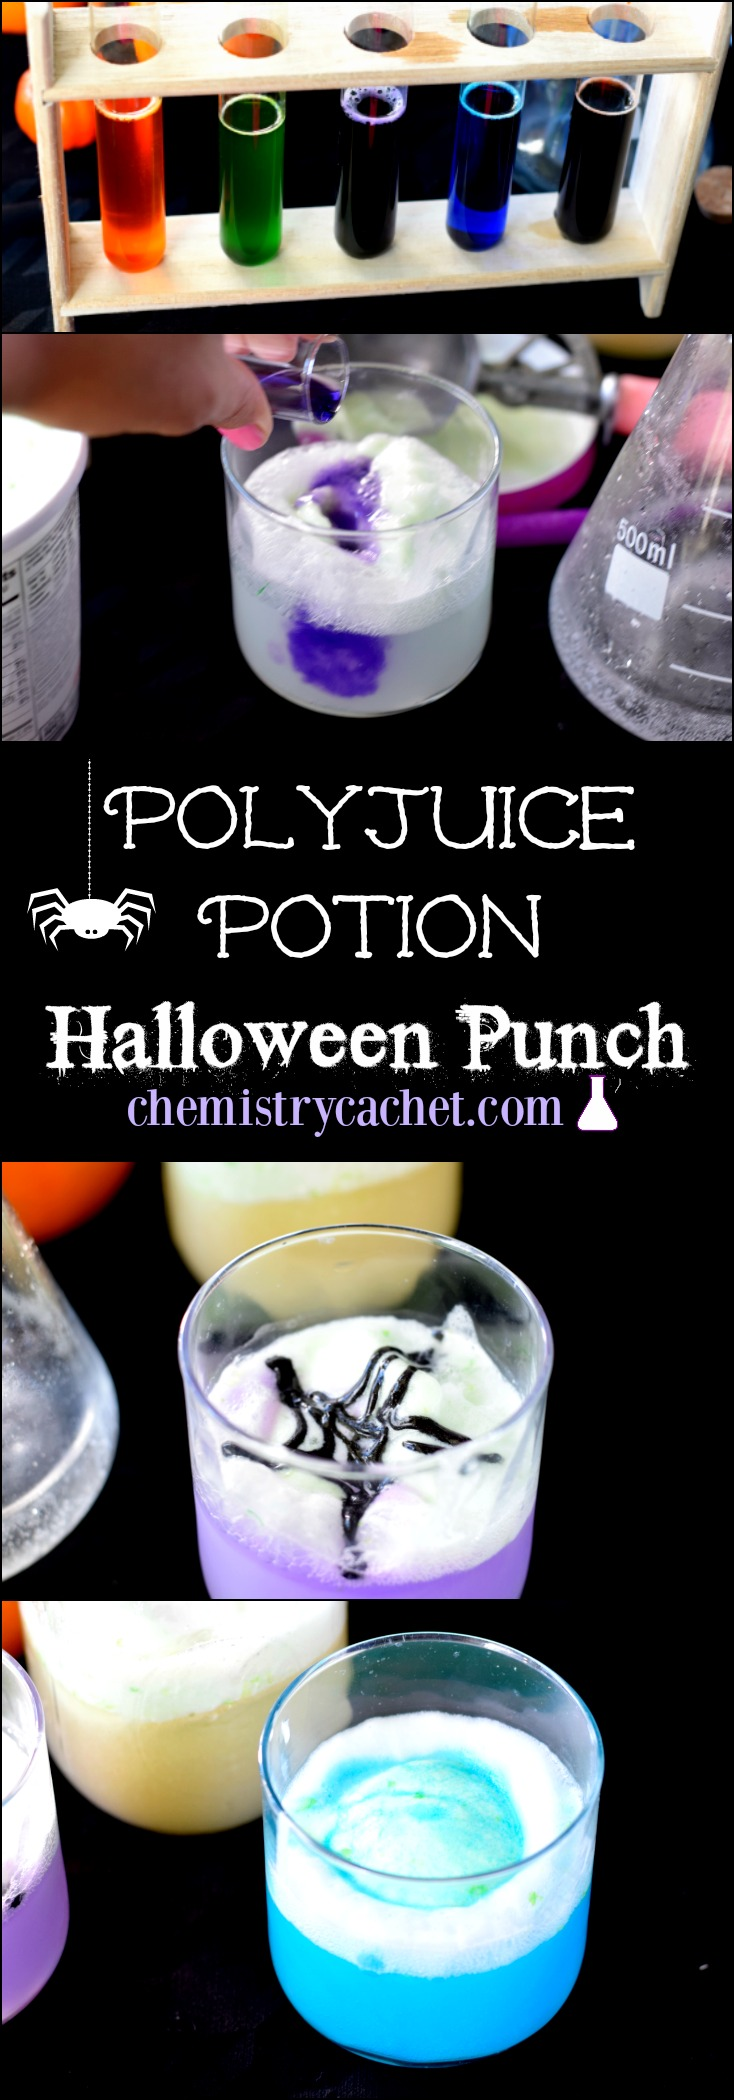 Super Easy Polyjuice Potion Halloween Punch. A fun potion recipe on chemistrycachet.com